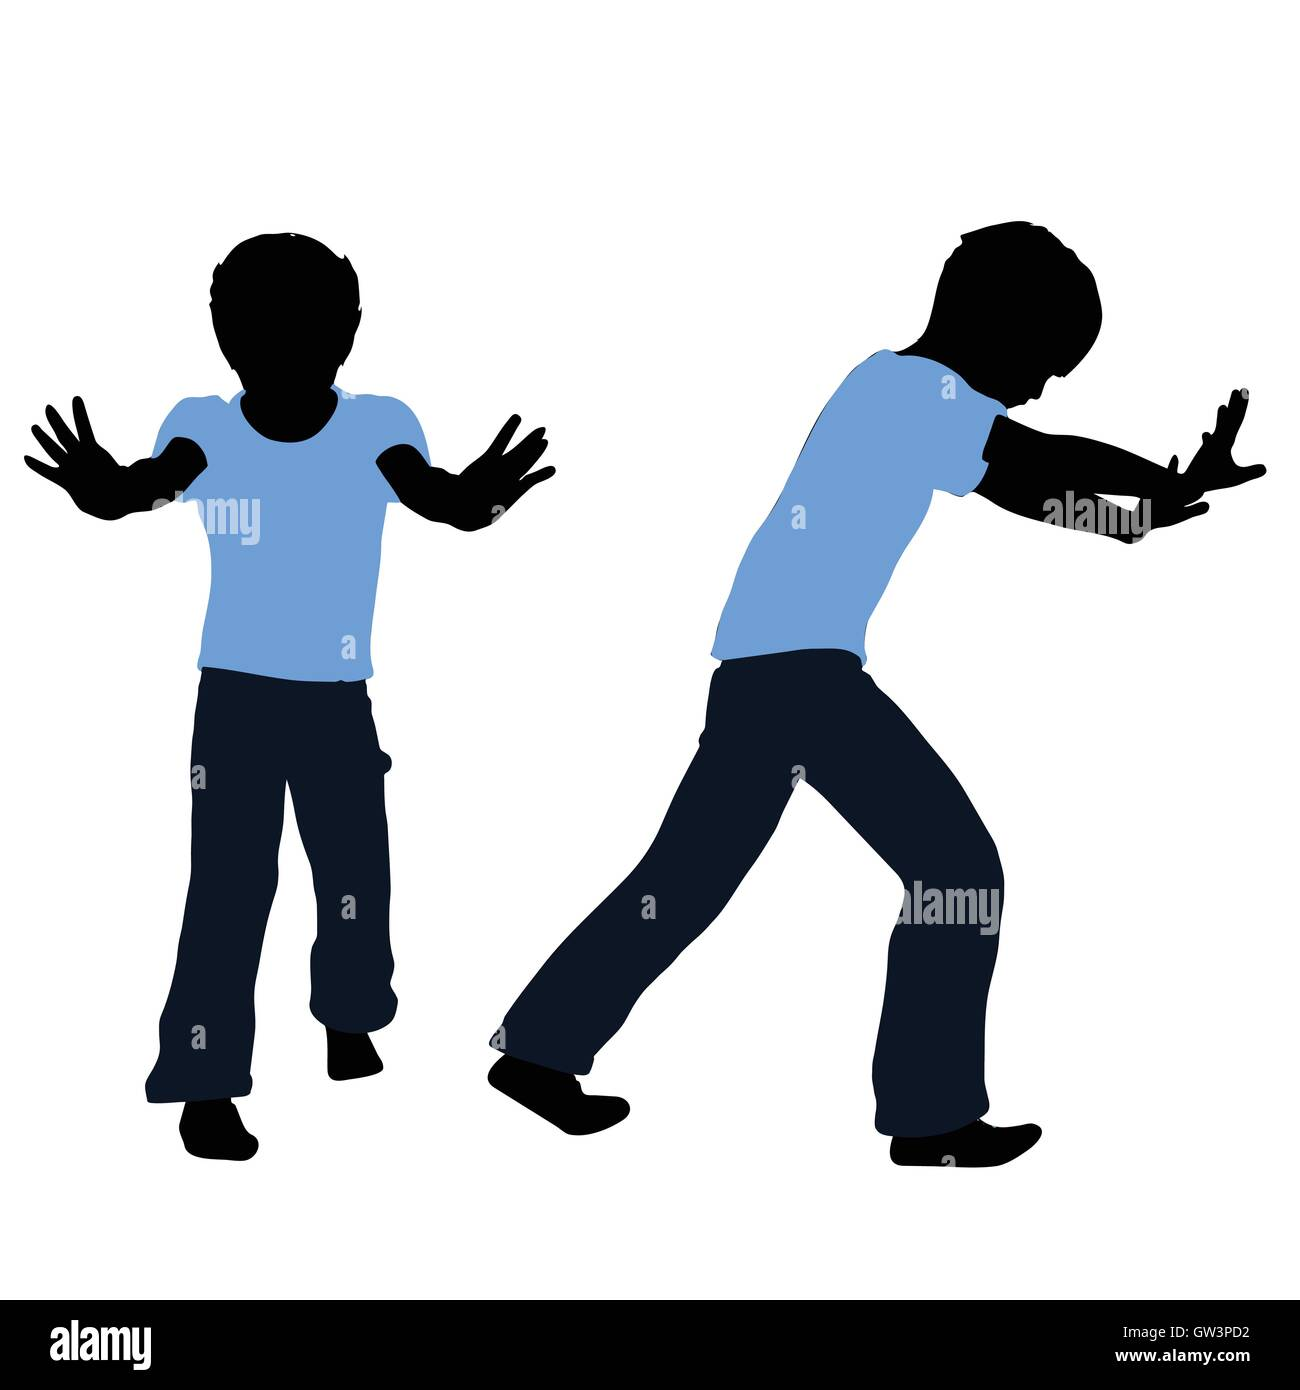 EPS 10 vector illustration of boy silhouette in Pushing Pose - Stock Vector